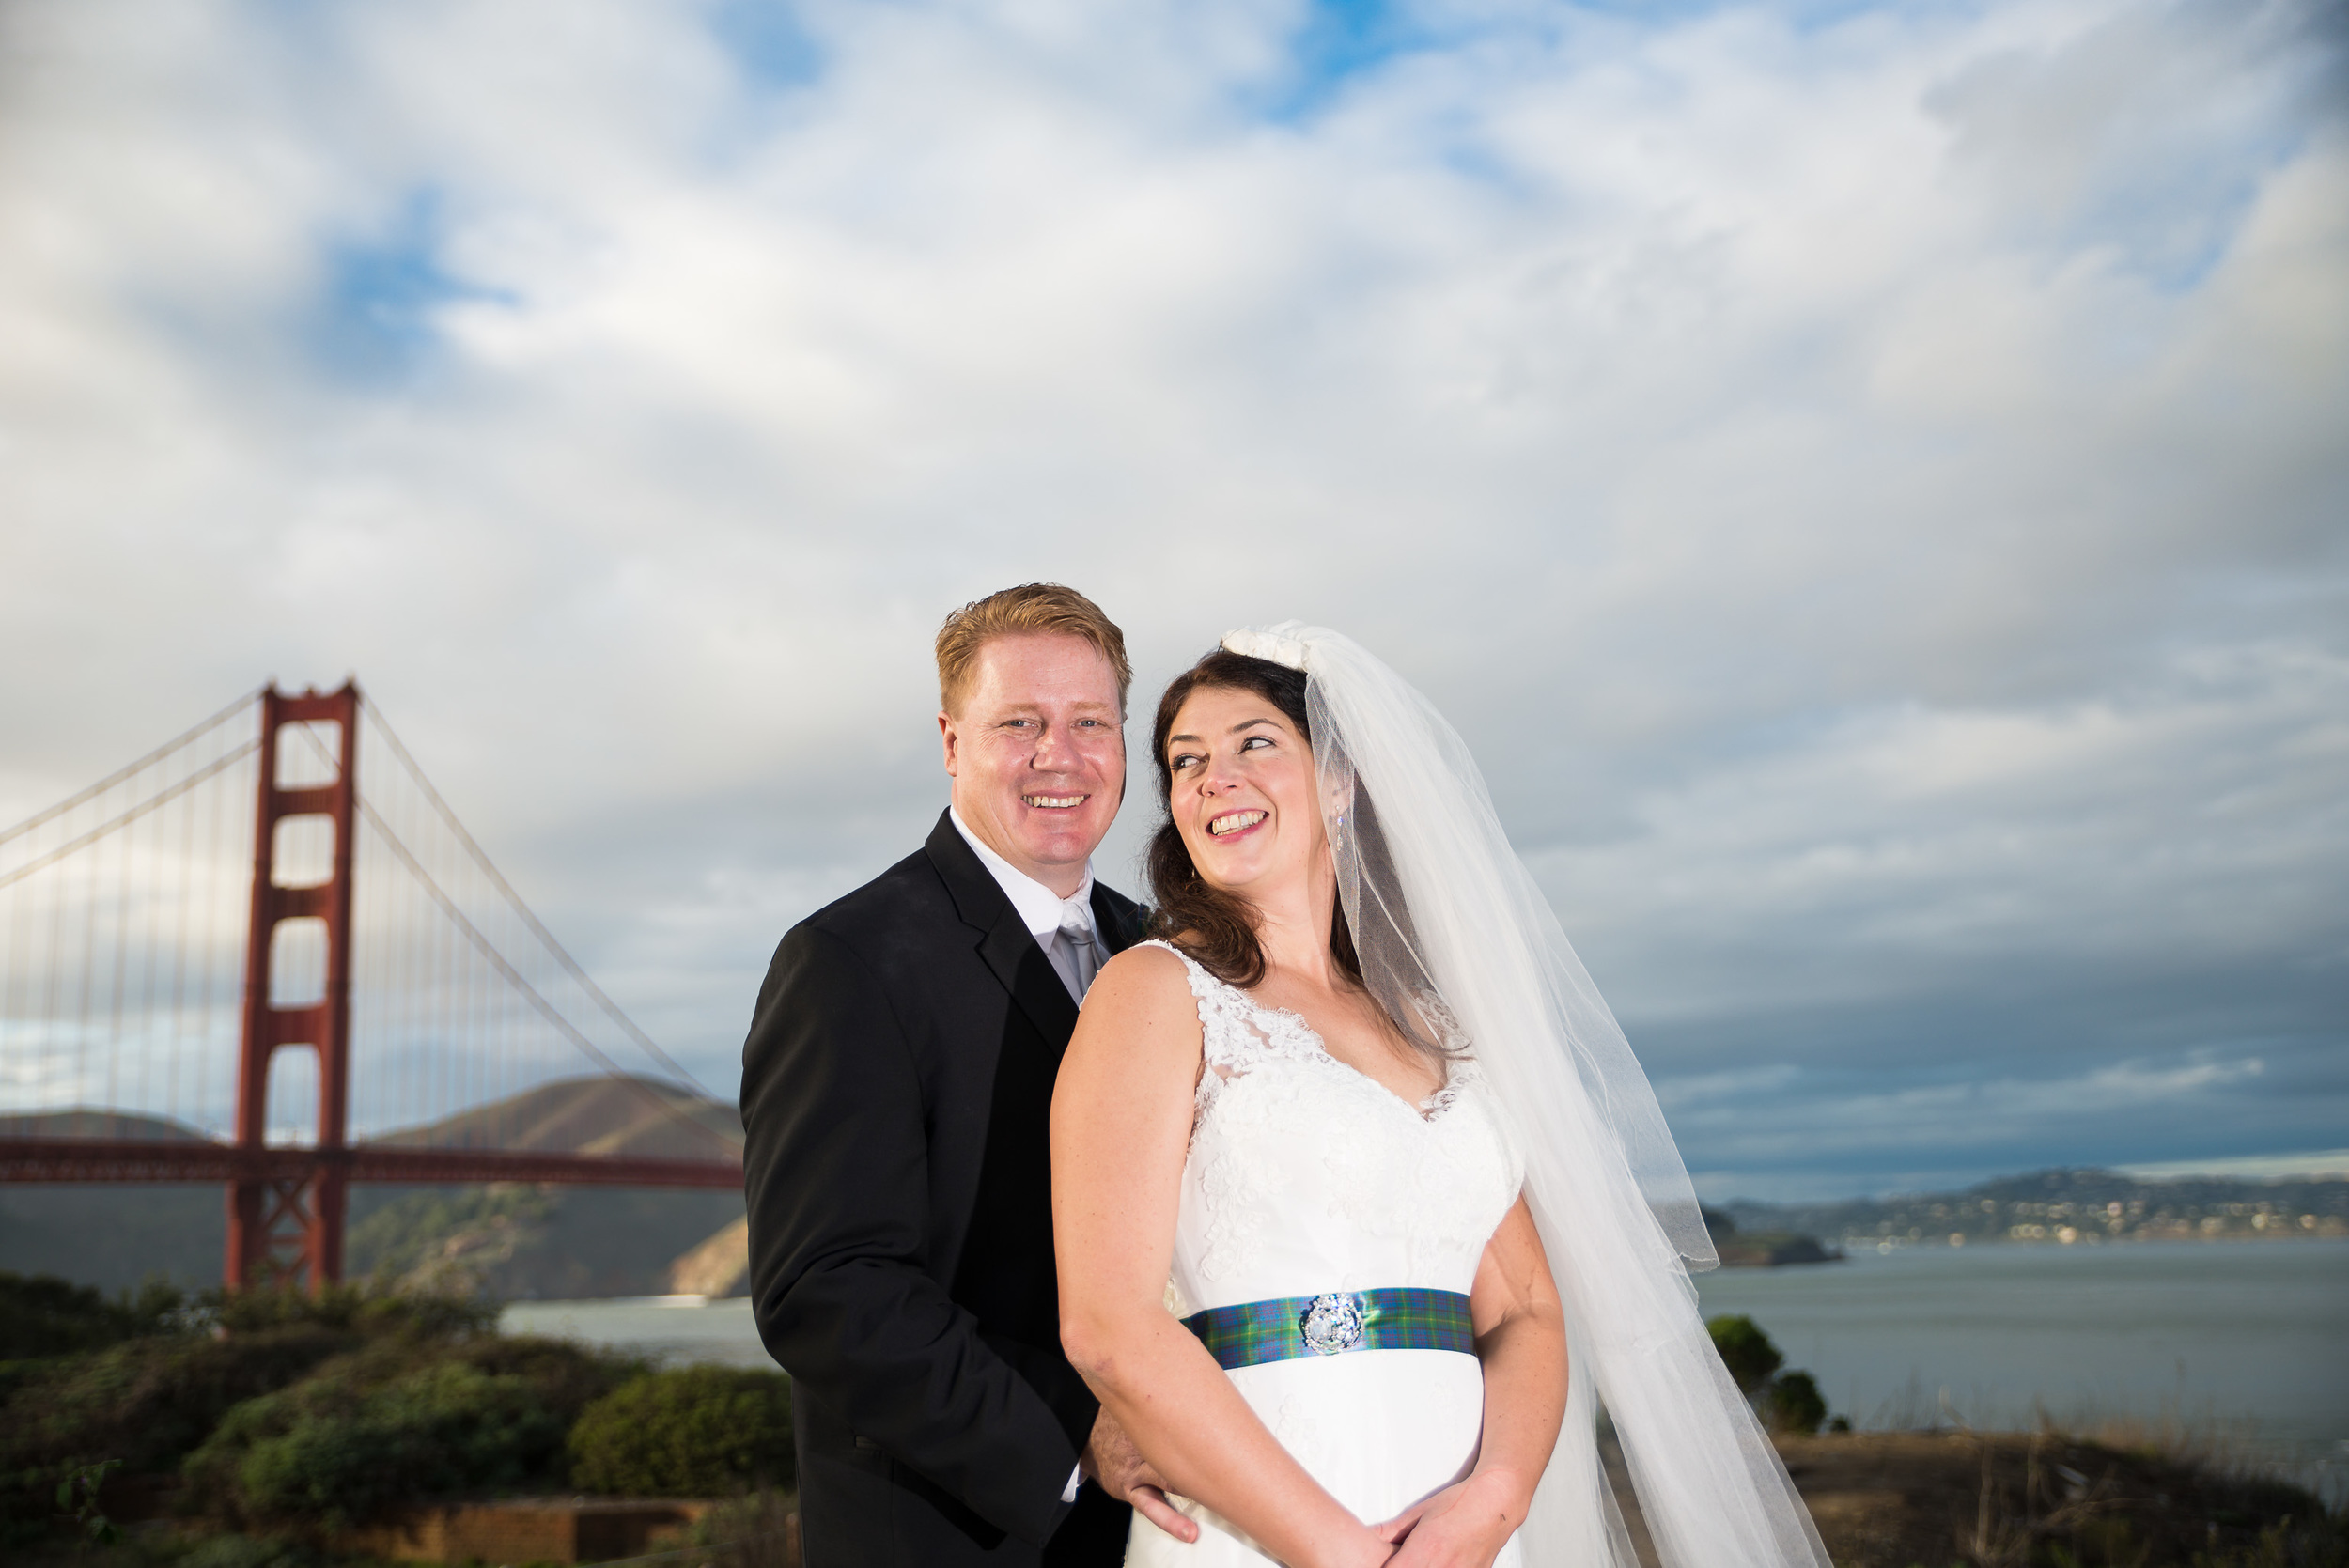 Marisa & Larry - Wedding in the Presidio, San Francisco